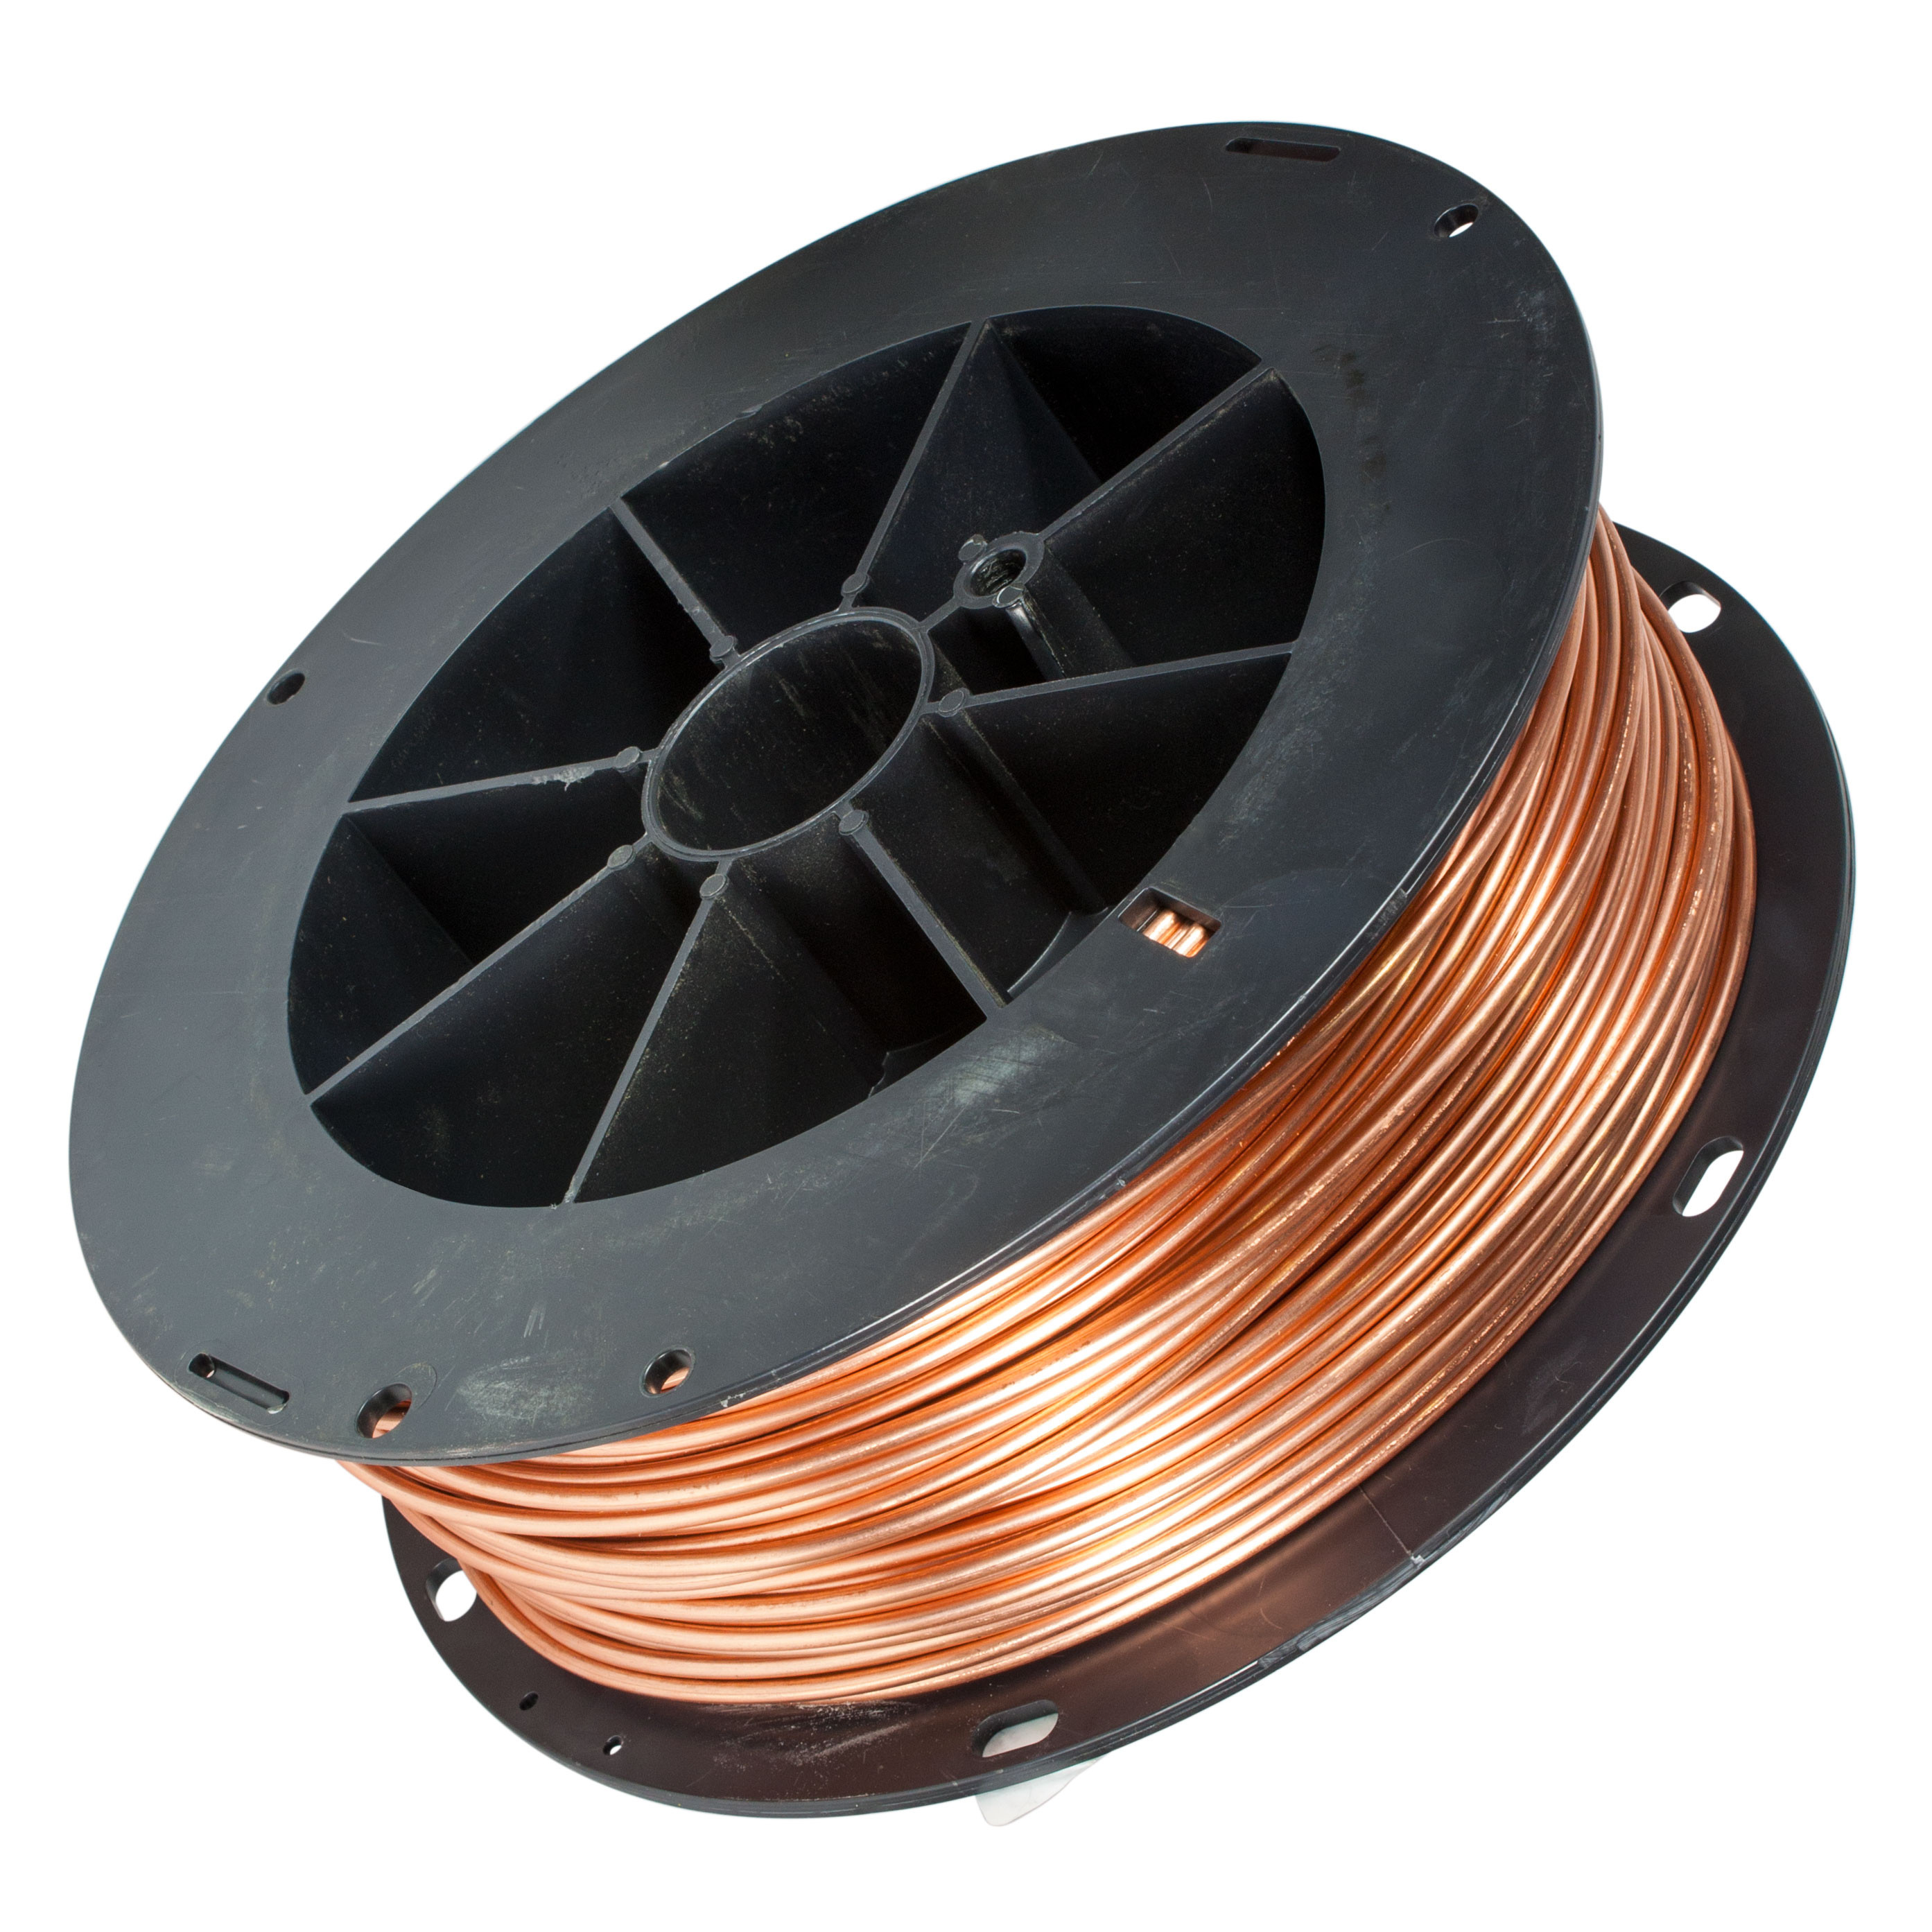 Southwire 6SOLX315BARE 6 Solid By 315 Bare Copper Single Wire ...